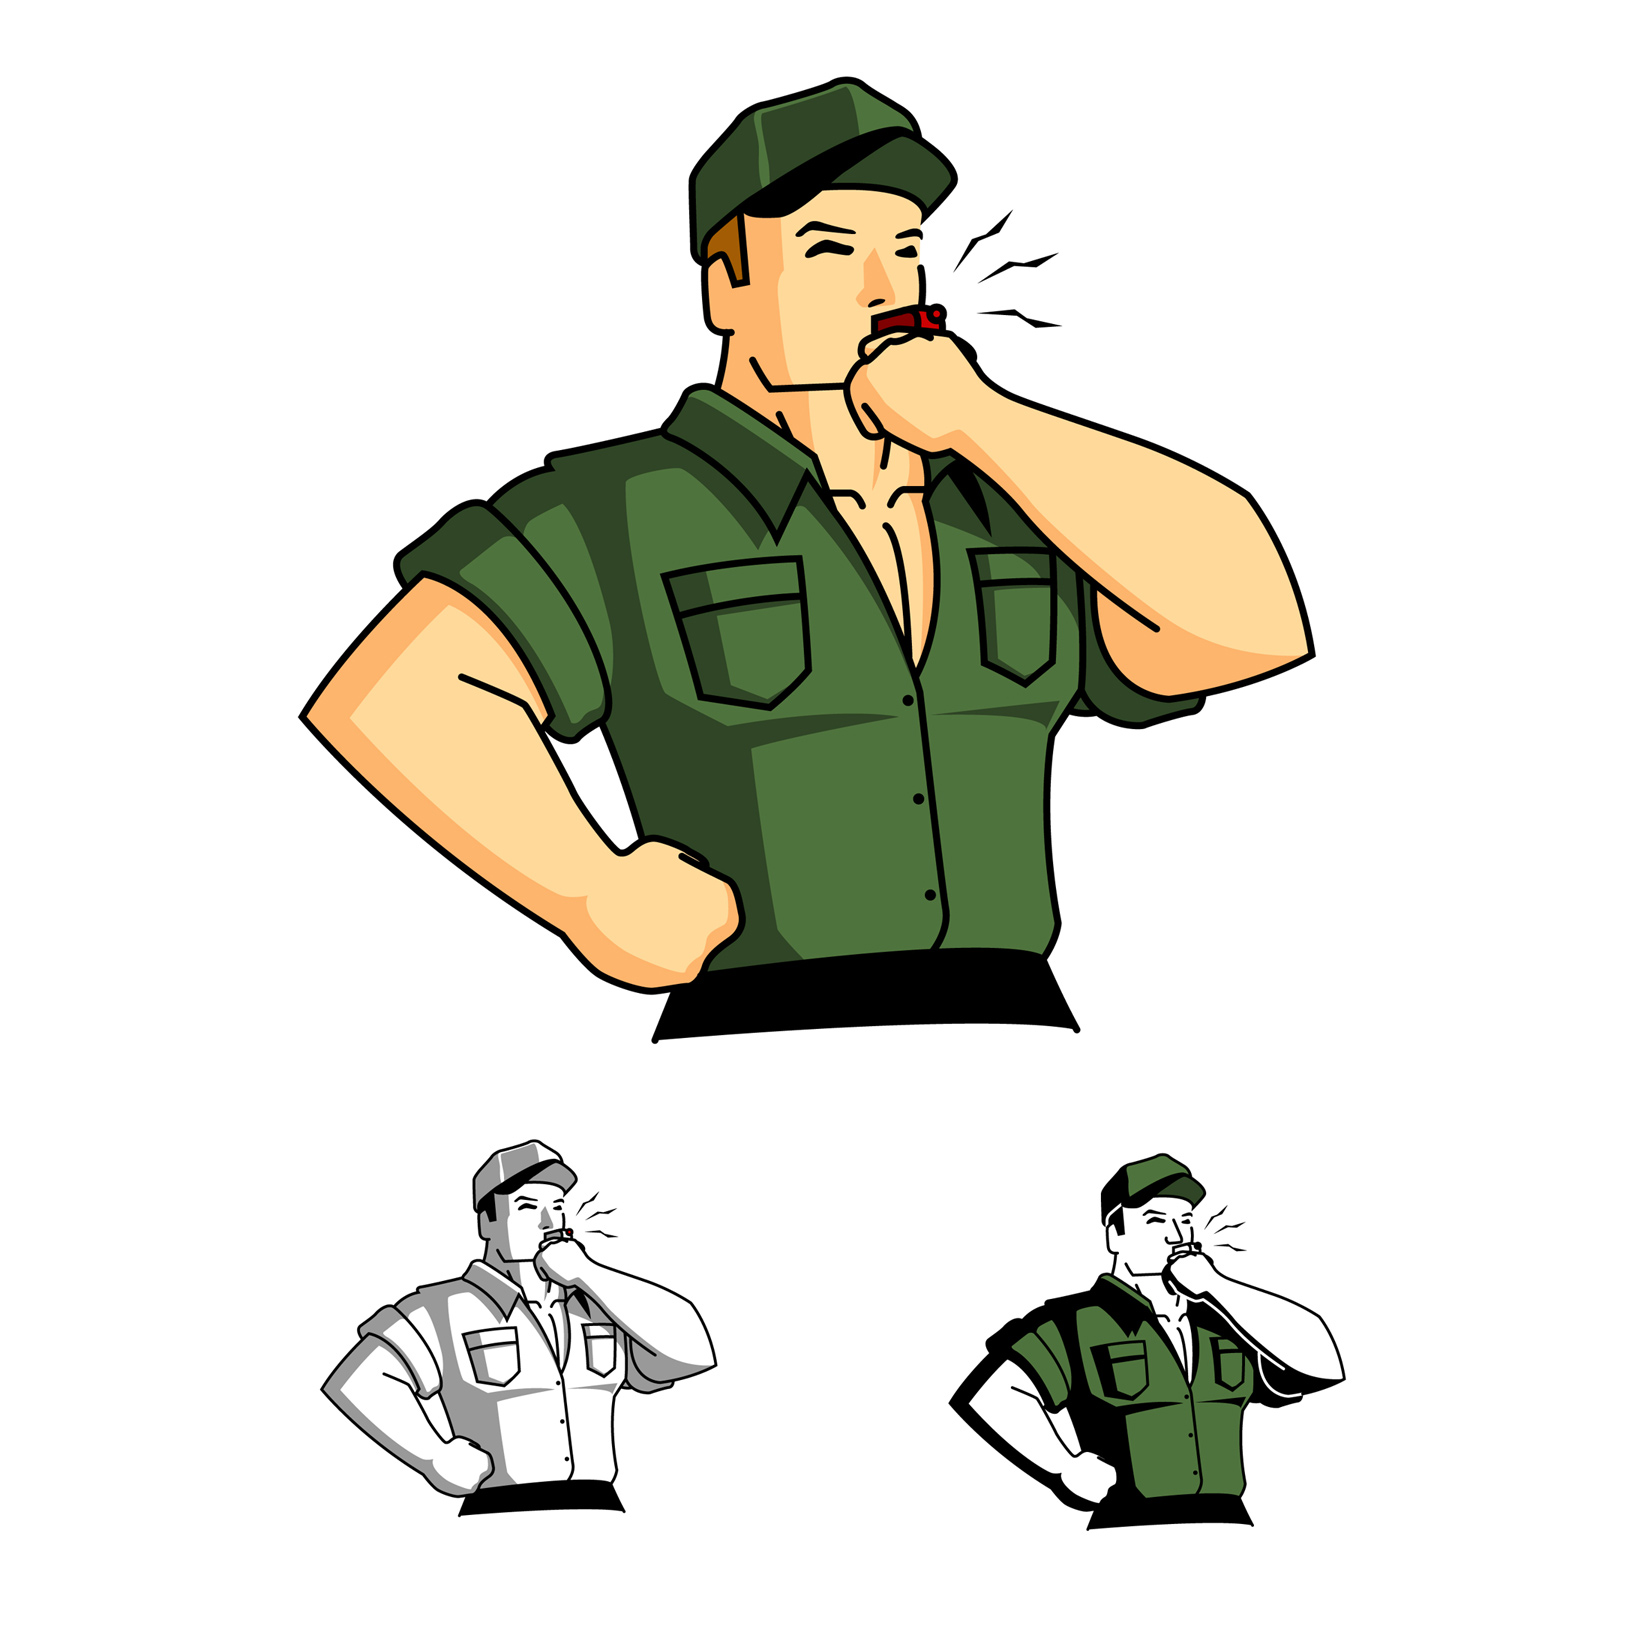 1641x1641 Drill Sergeant Blowing A Whistle Semi Retro Style Illustration